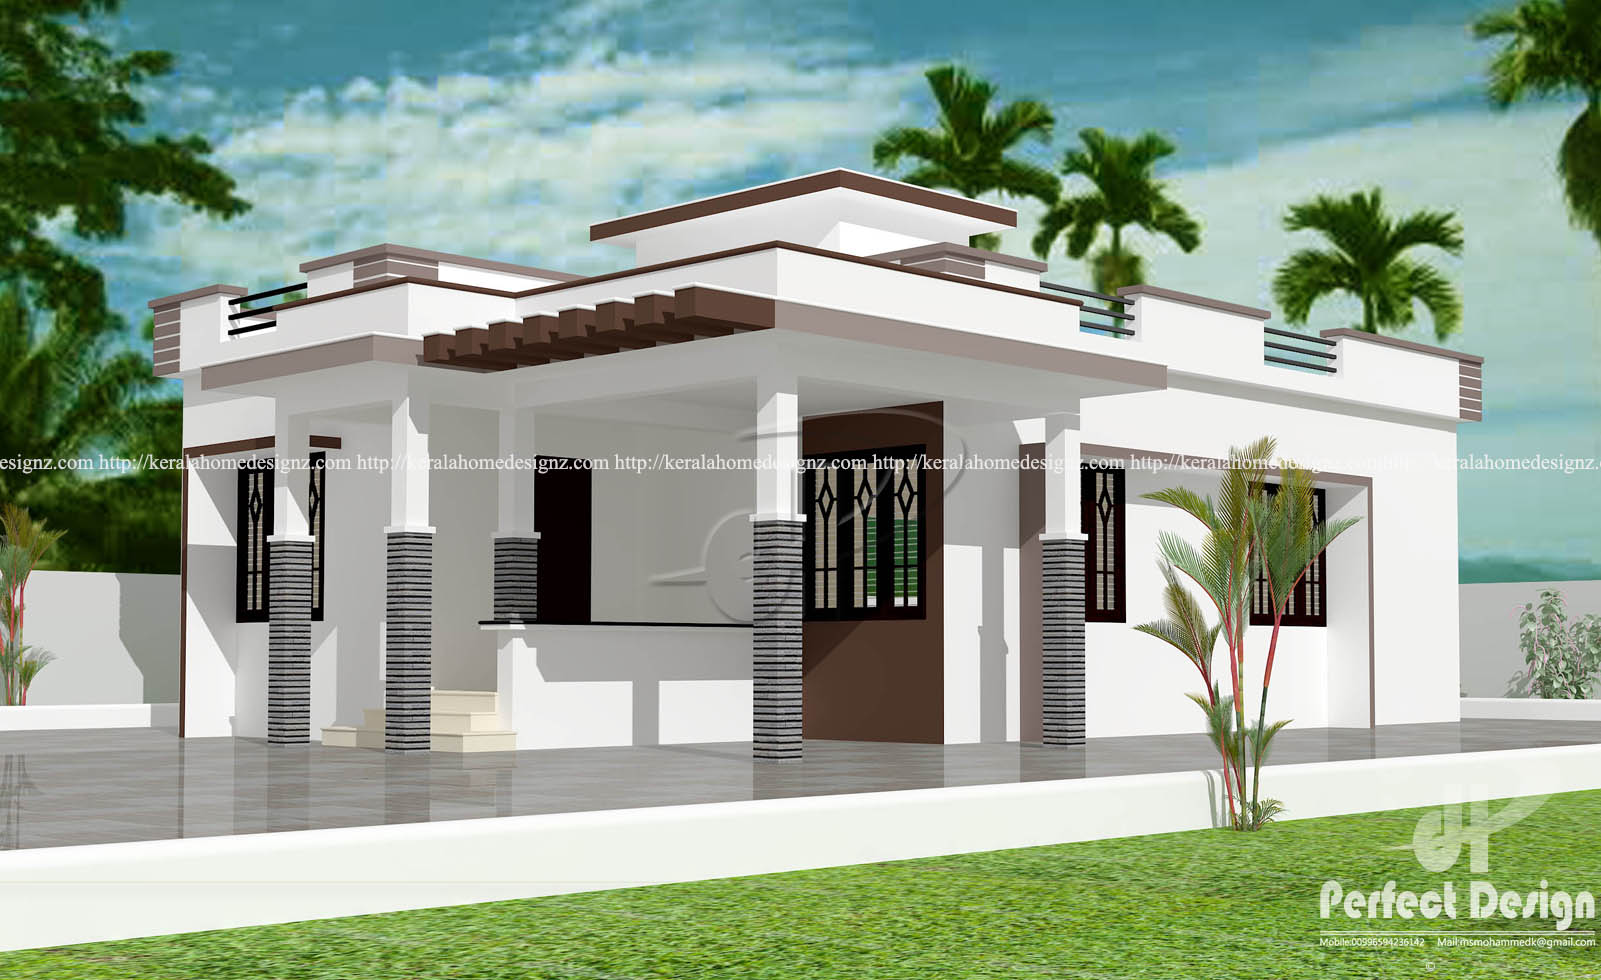 12 lakhs budget house plans in kerala for Cost of house plans